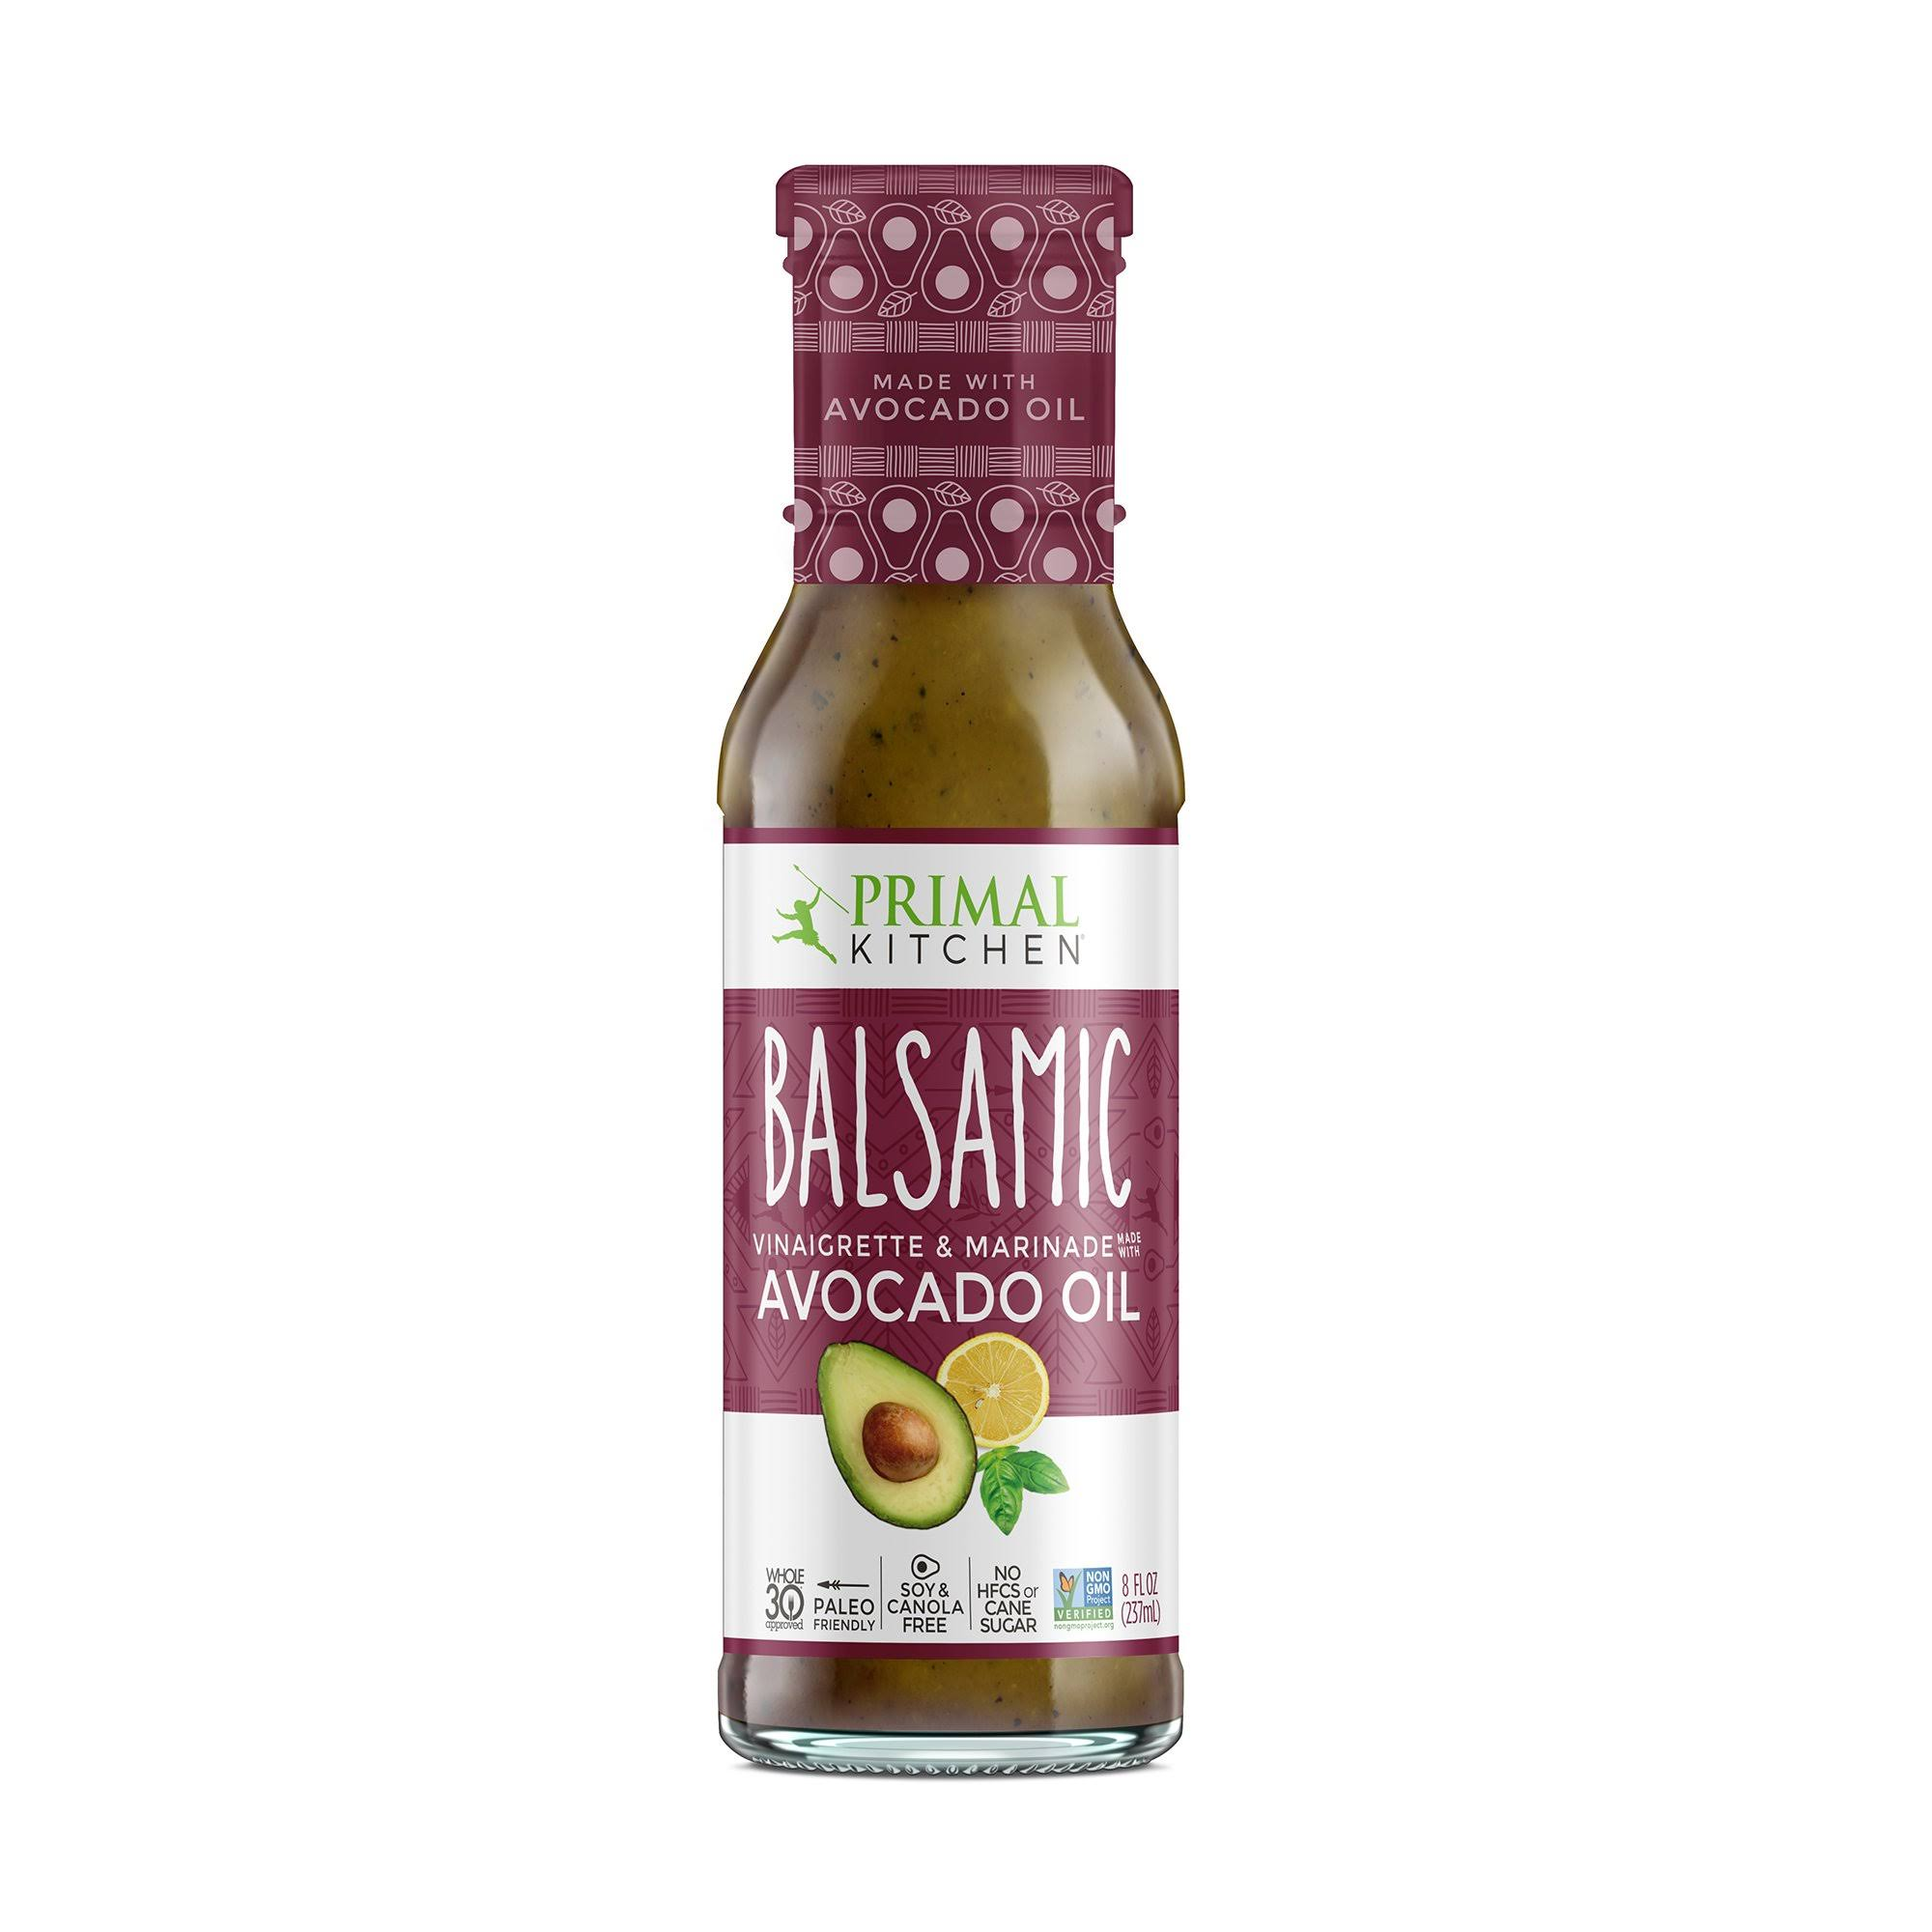 Primal Kitchen Balsamic Vinaigrette and Marinade - With Avocado Oil, 8oz